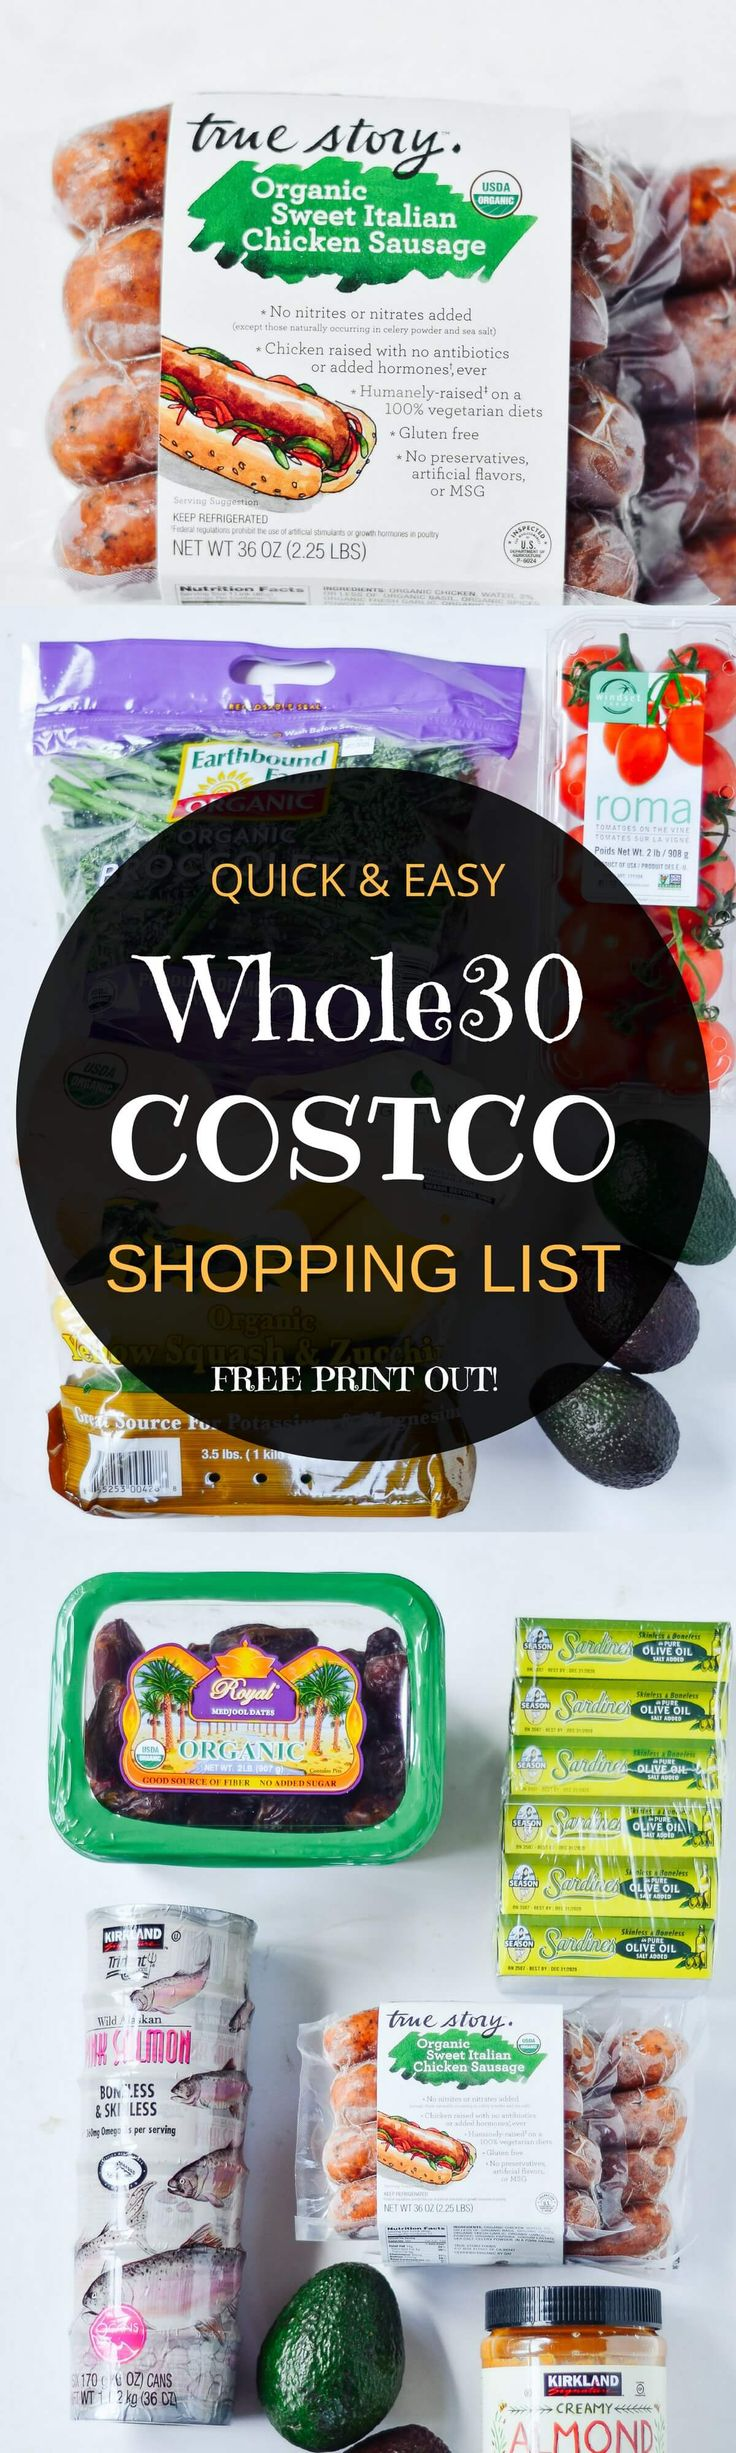 Best Whole30 and paleo shopping list!! Complete with how to read the labels guide and checkboxes for all your whole30 needs! Shop with ease! Eat like a whole30 king! Free shopping list & shopping guide printout! Whole30 shopping list. Whole30 Costco shopping list. Whole30 shopping list week one. Whole30 budget shopping list. whole30 meal plan. Easy whole30 dinner recipes. Easy whole30 dinner recipes. Whole30 recipes. Whole30 lunch. Whole30 meal planning. Whole30 meal prep. Healthy paleo…